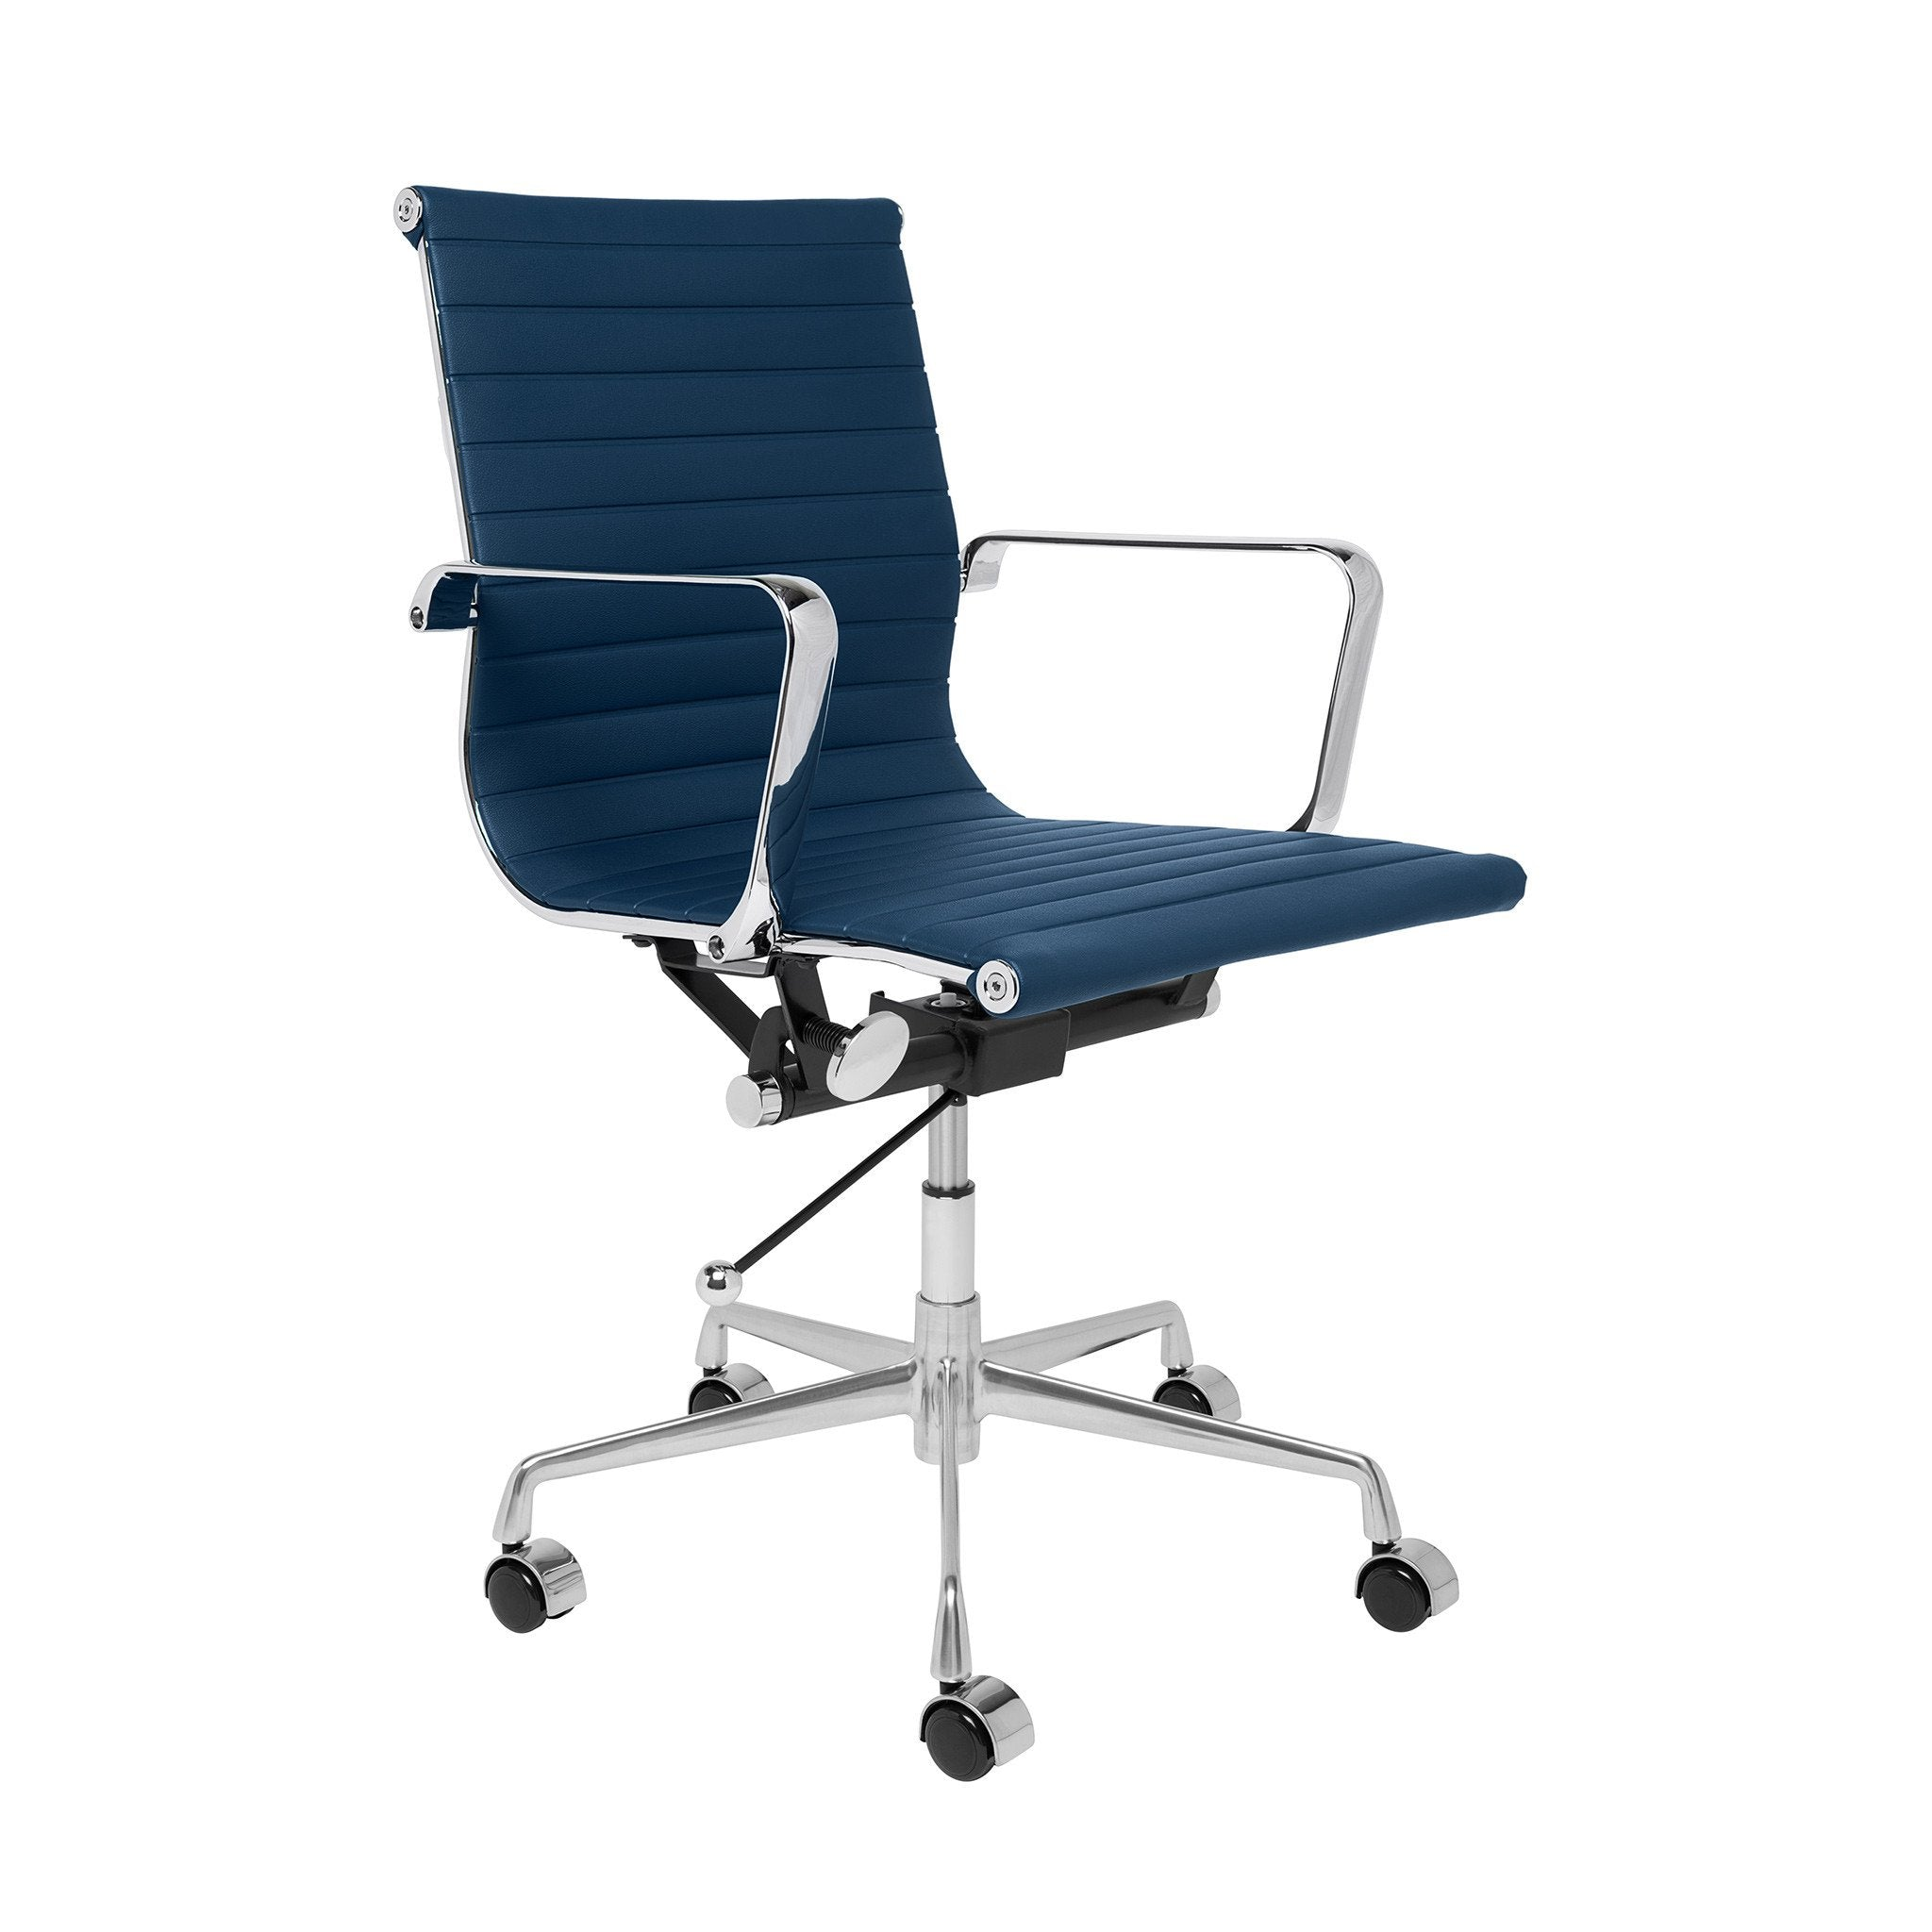 Eames Management Chair I Mid Century Modern Furniture I